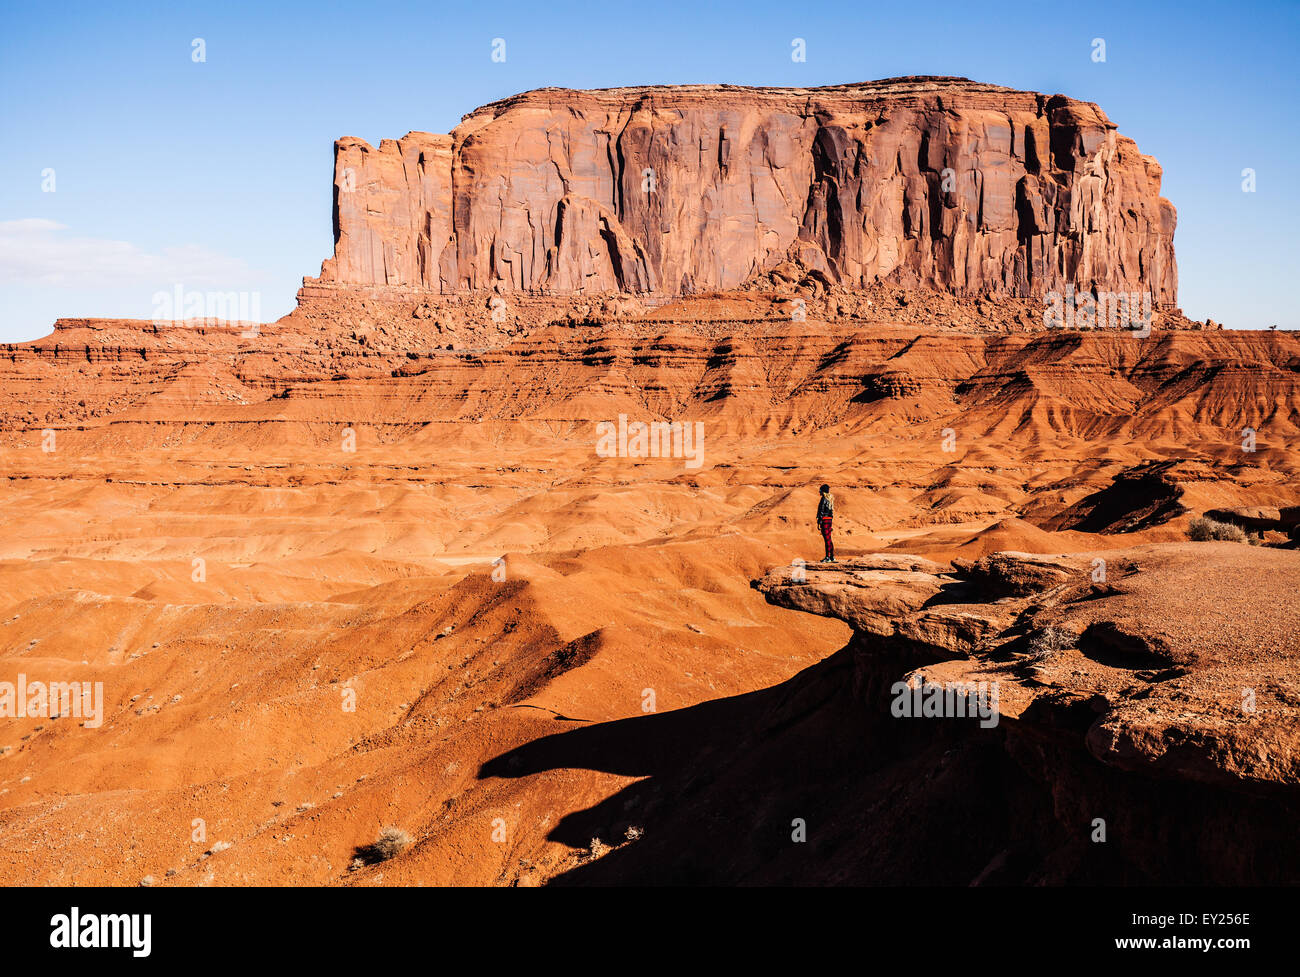 Distant view of woman looking out over  Monument Valley, Utah, USA - Stock Image